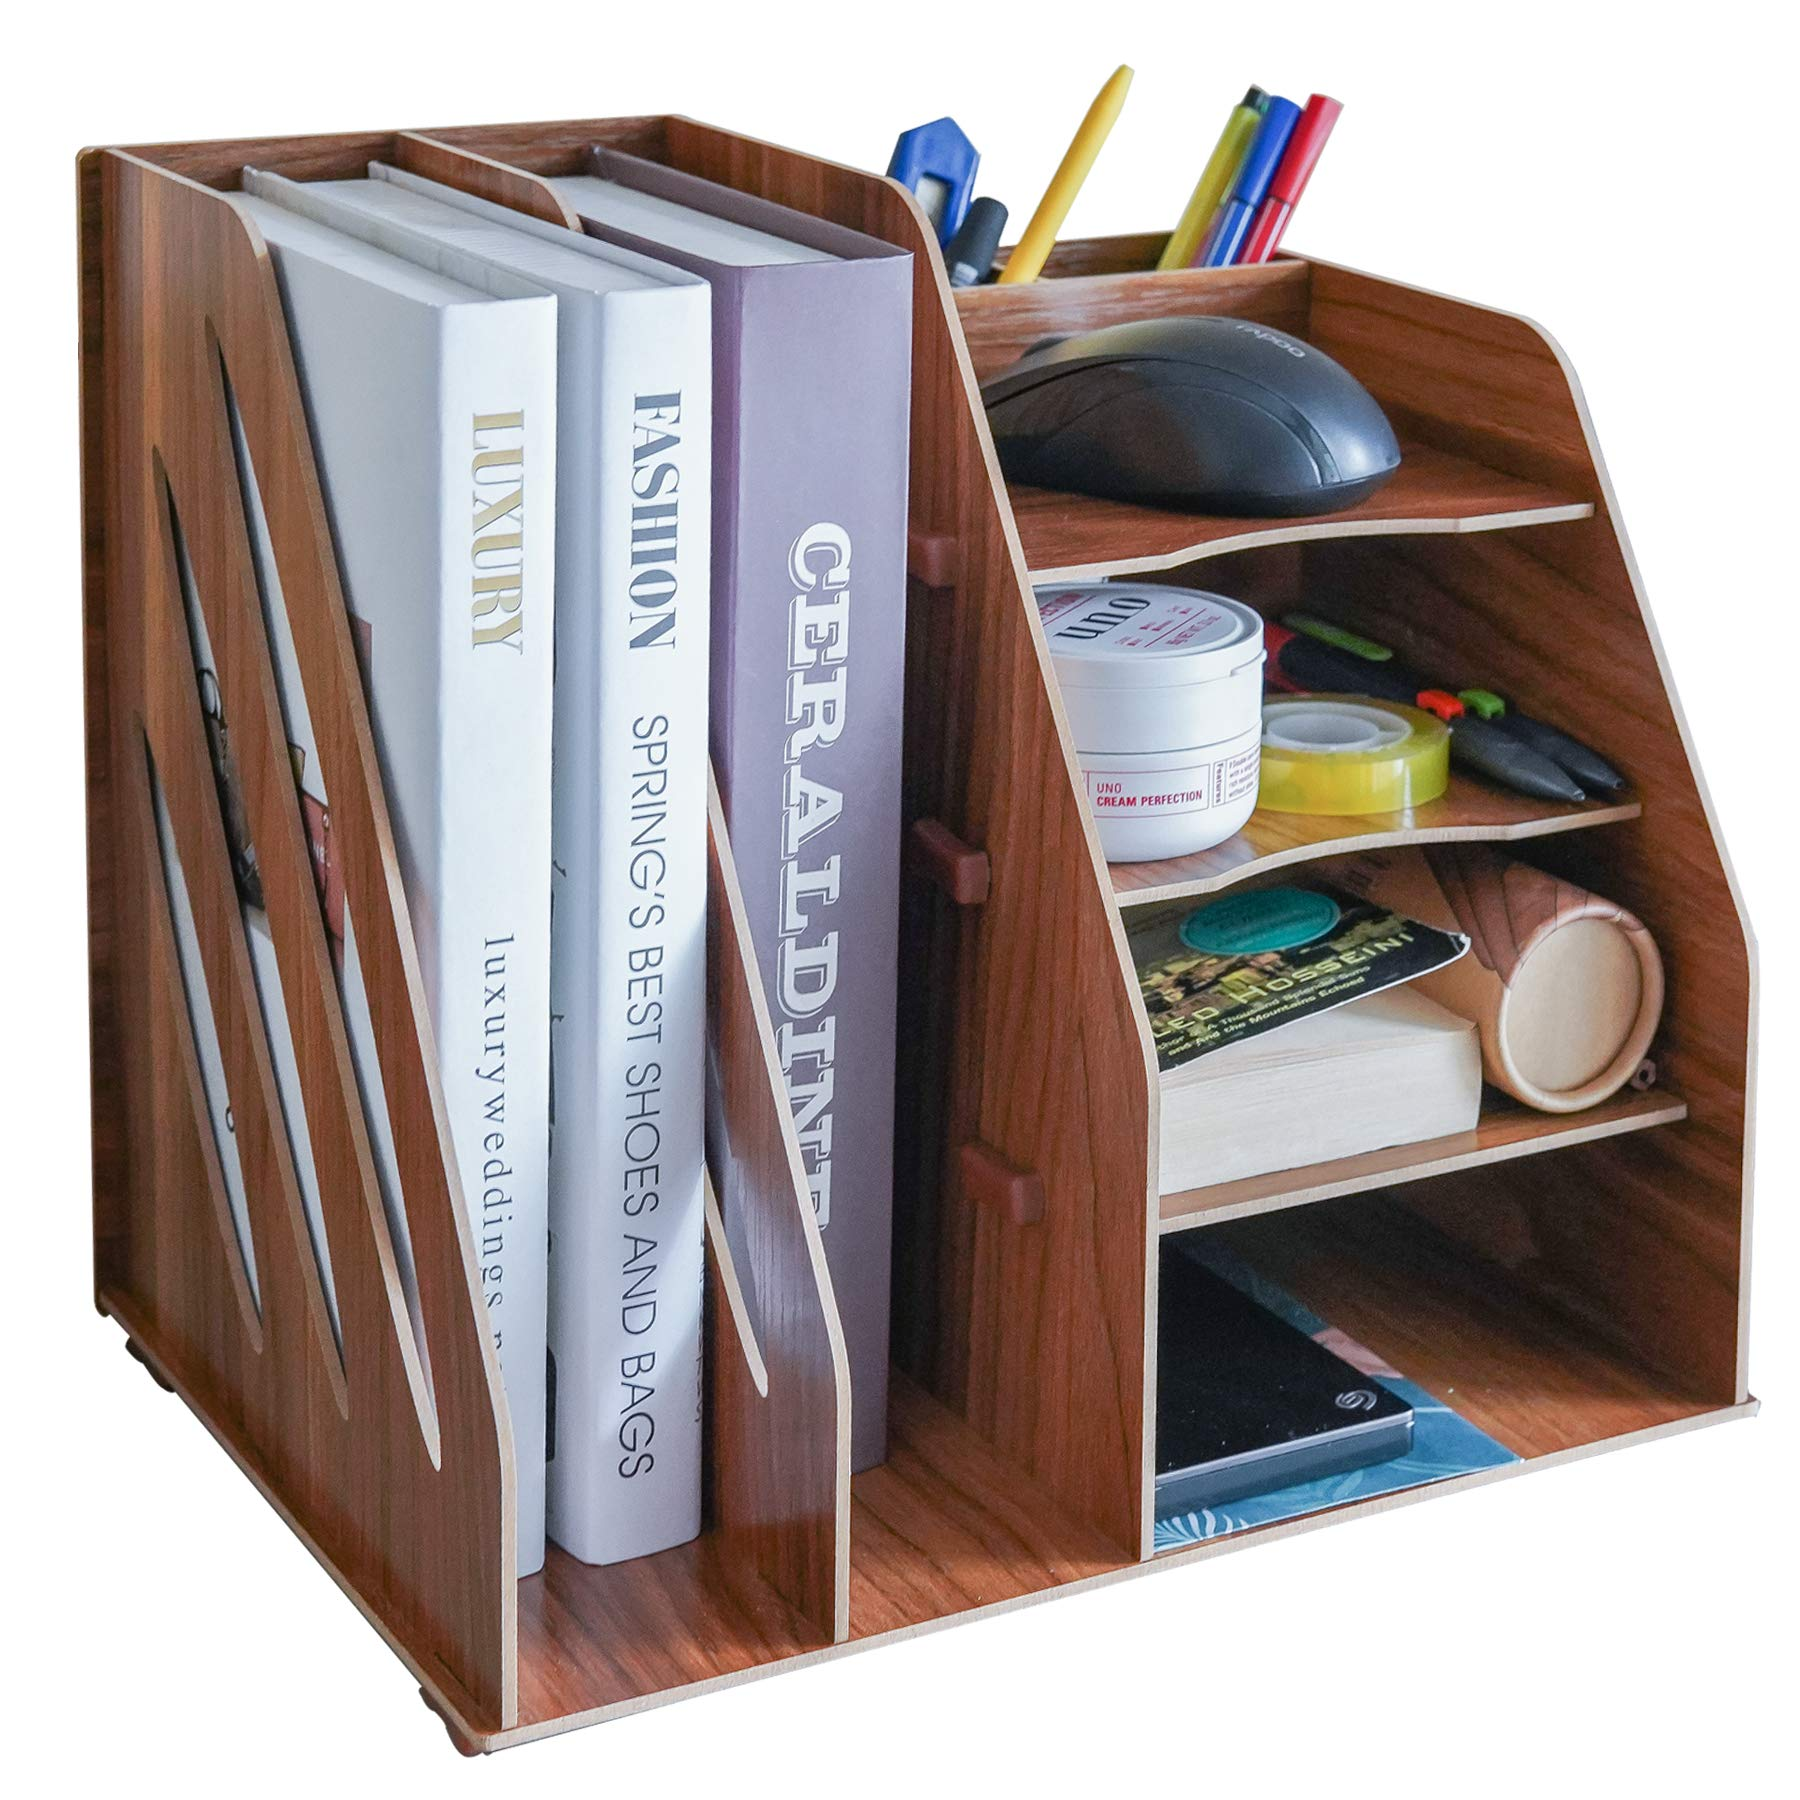 CLAPOTIS Multifunctional Organizer/Desk Organizer/Pen Holder Organizer/Accessory Organizer